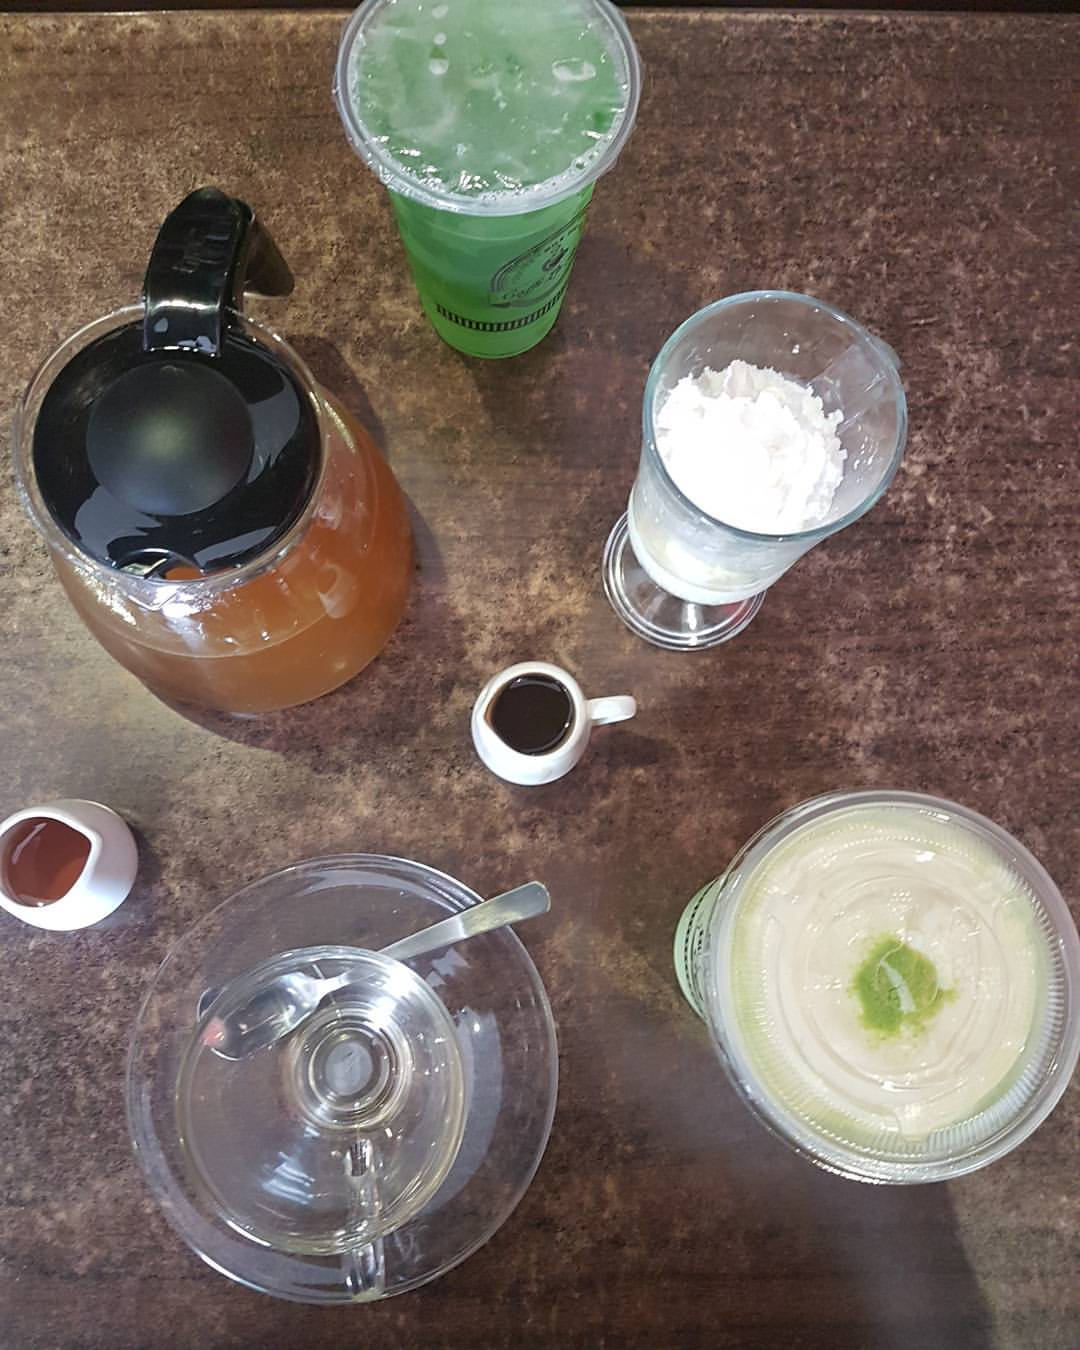 Taking a break w/ Caffe La Tea selections of drinks - matcha, lenon grass, affogato, frappe and so much more to choose.